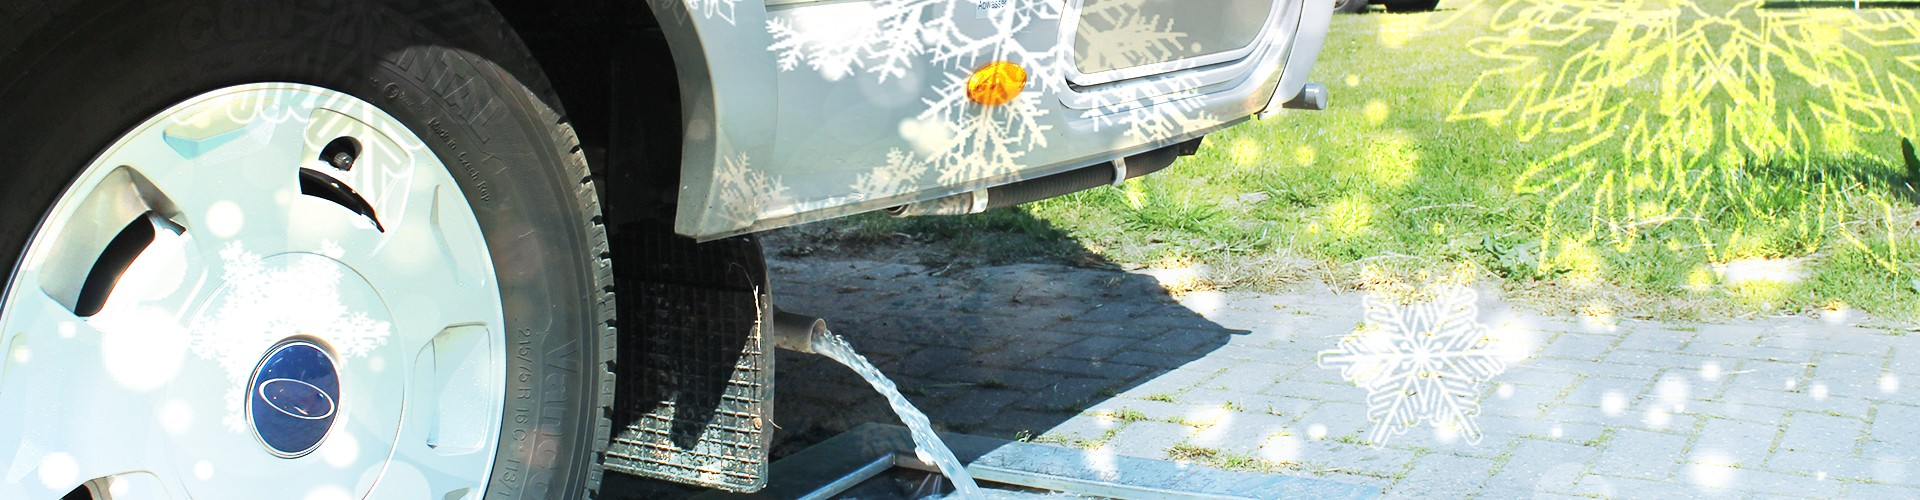 Prevent your RV holding tank from freezing